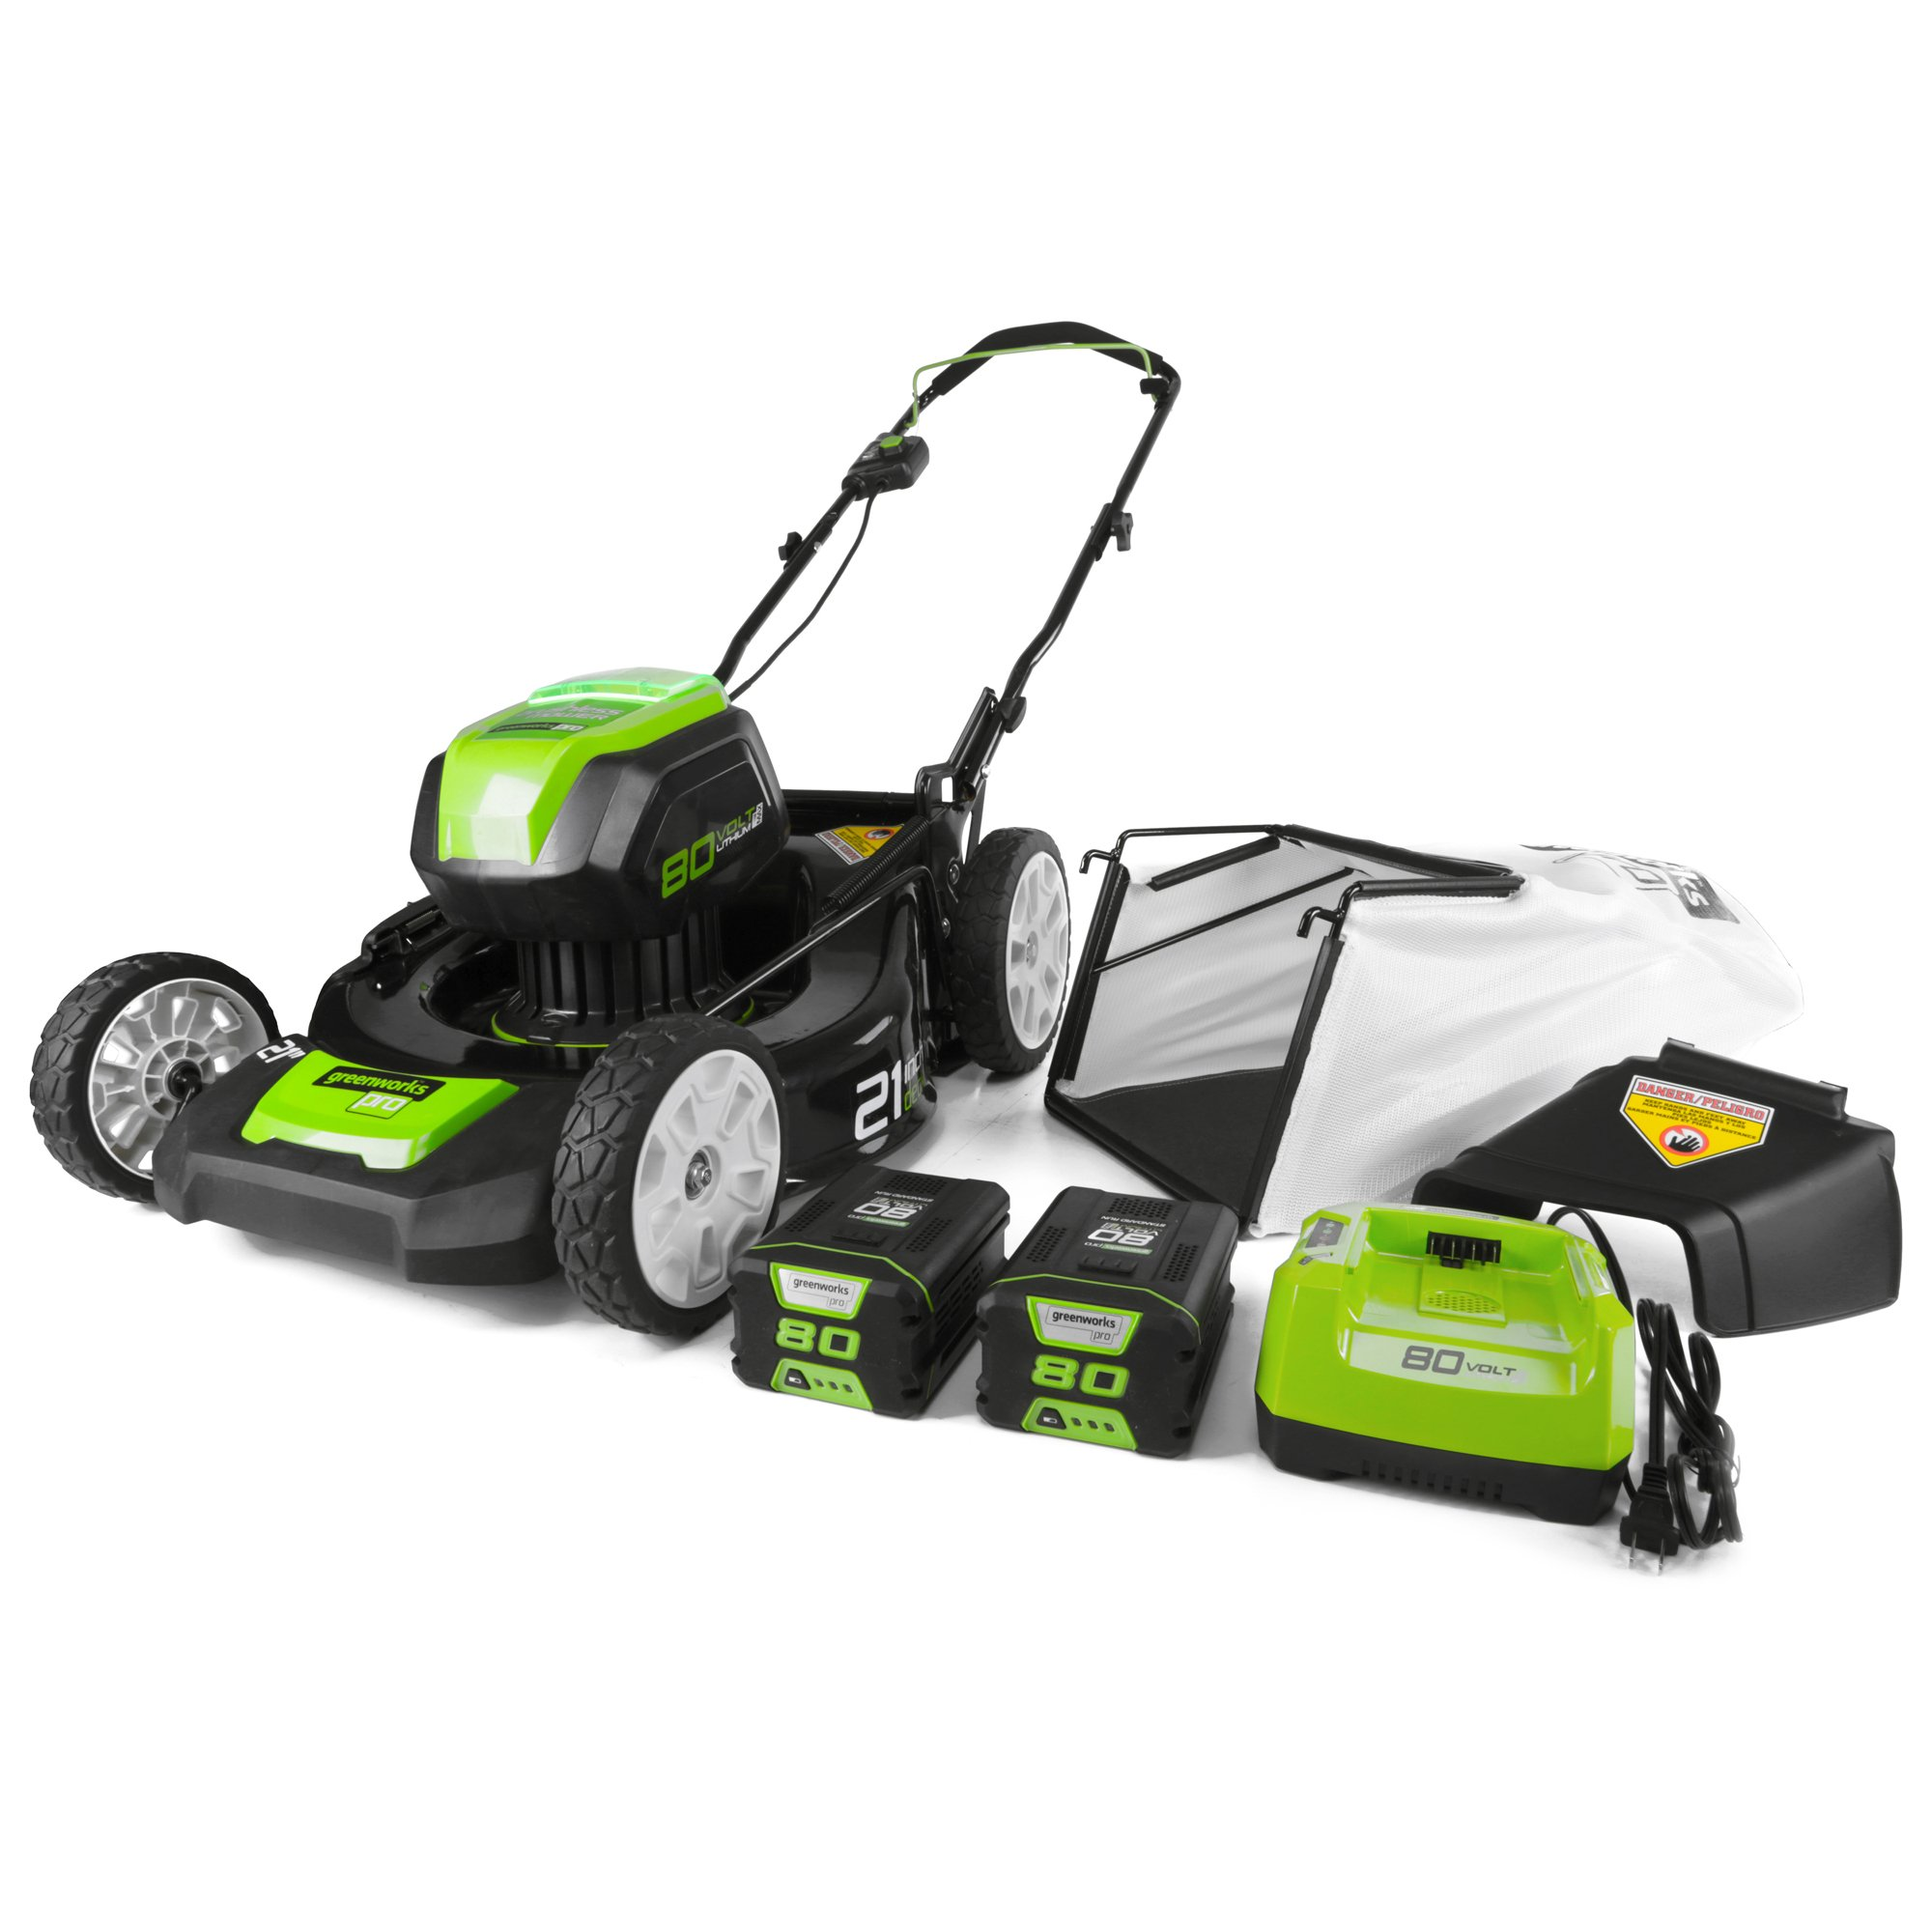 Greenworks PRO 21-Inch 80V Cordless Lawn Mower, Two 2.0AH Batteries Included GLM801601 by Greenworks